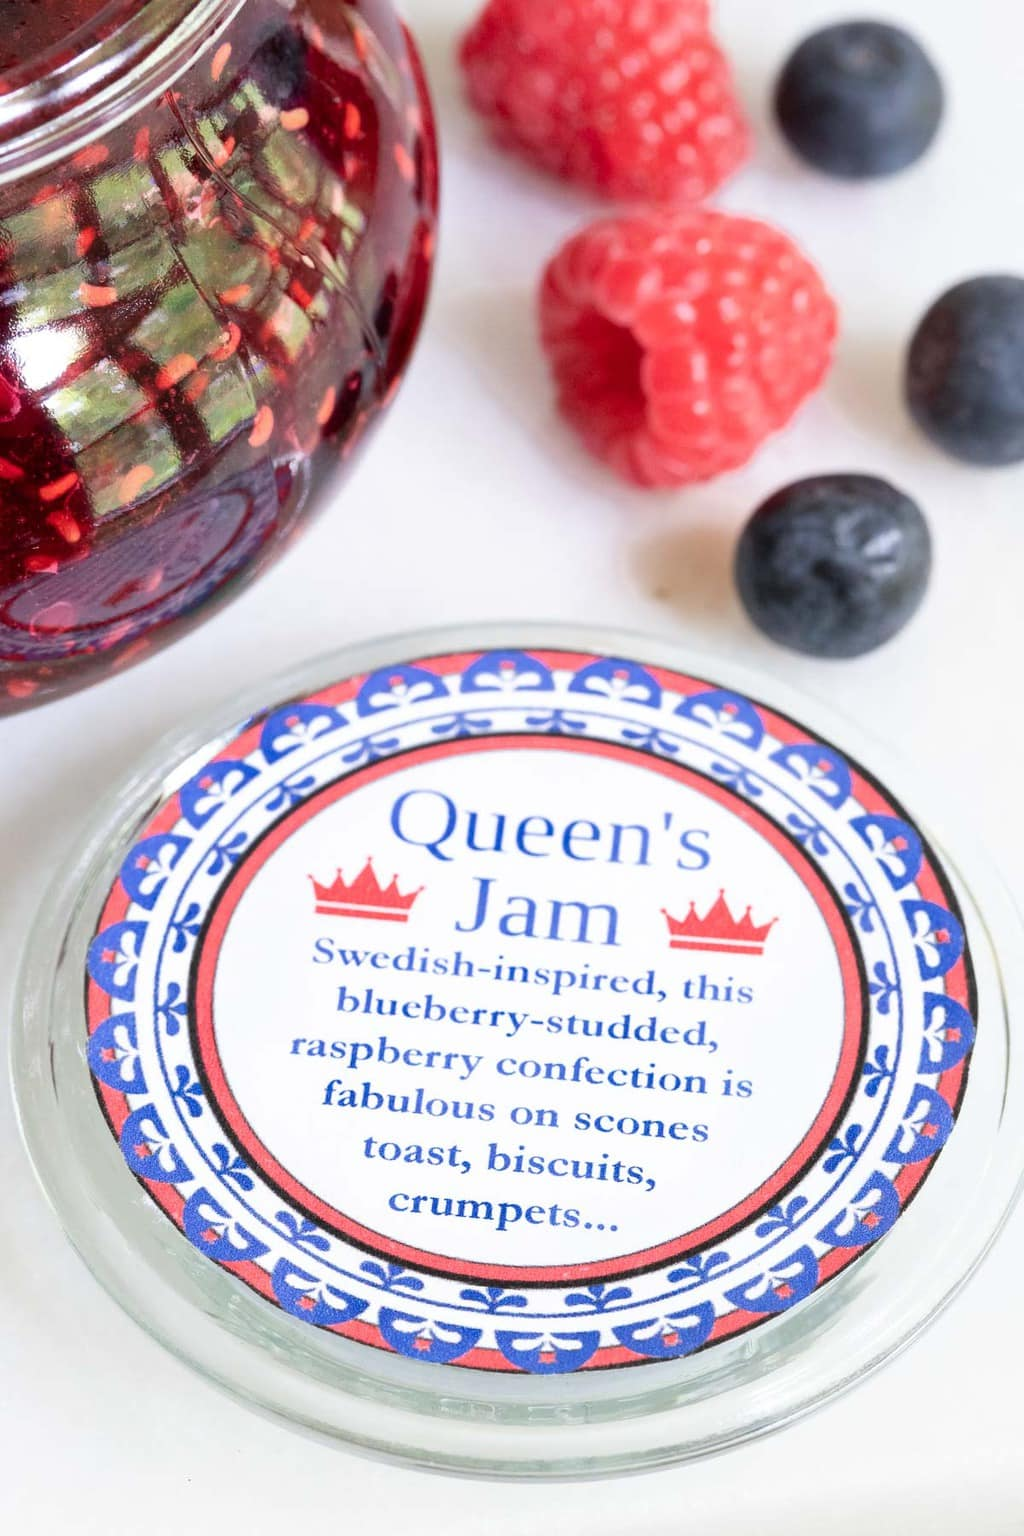 Vertical photo of the lid label for a jar of Queen's Jam (Raspberry Blueberry Jam) with fresh berries in the background.